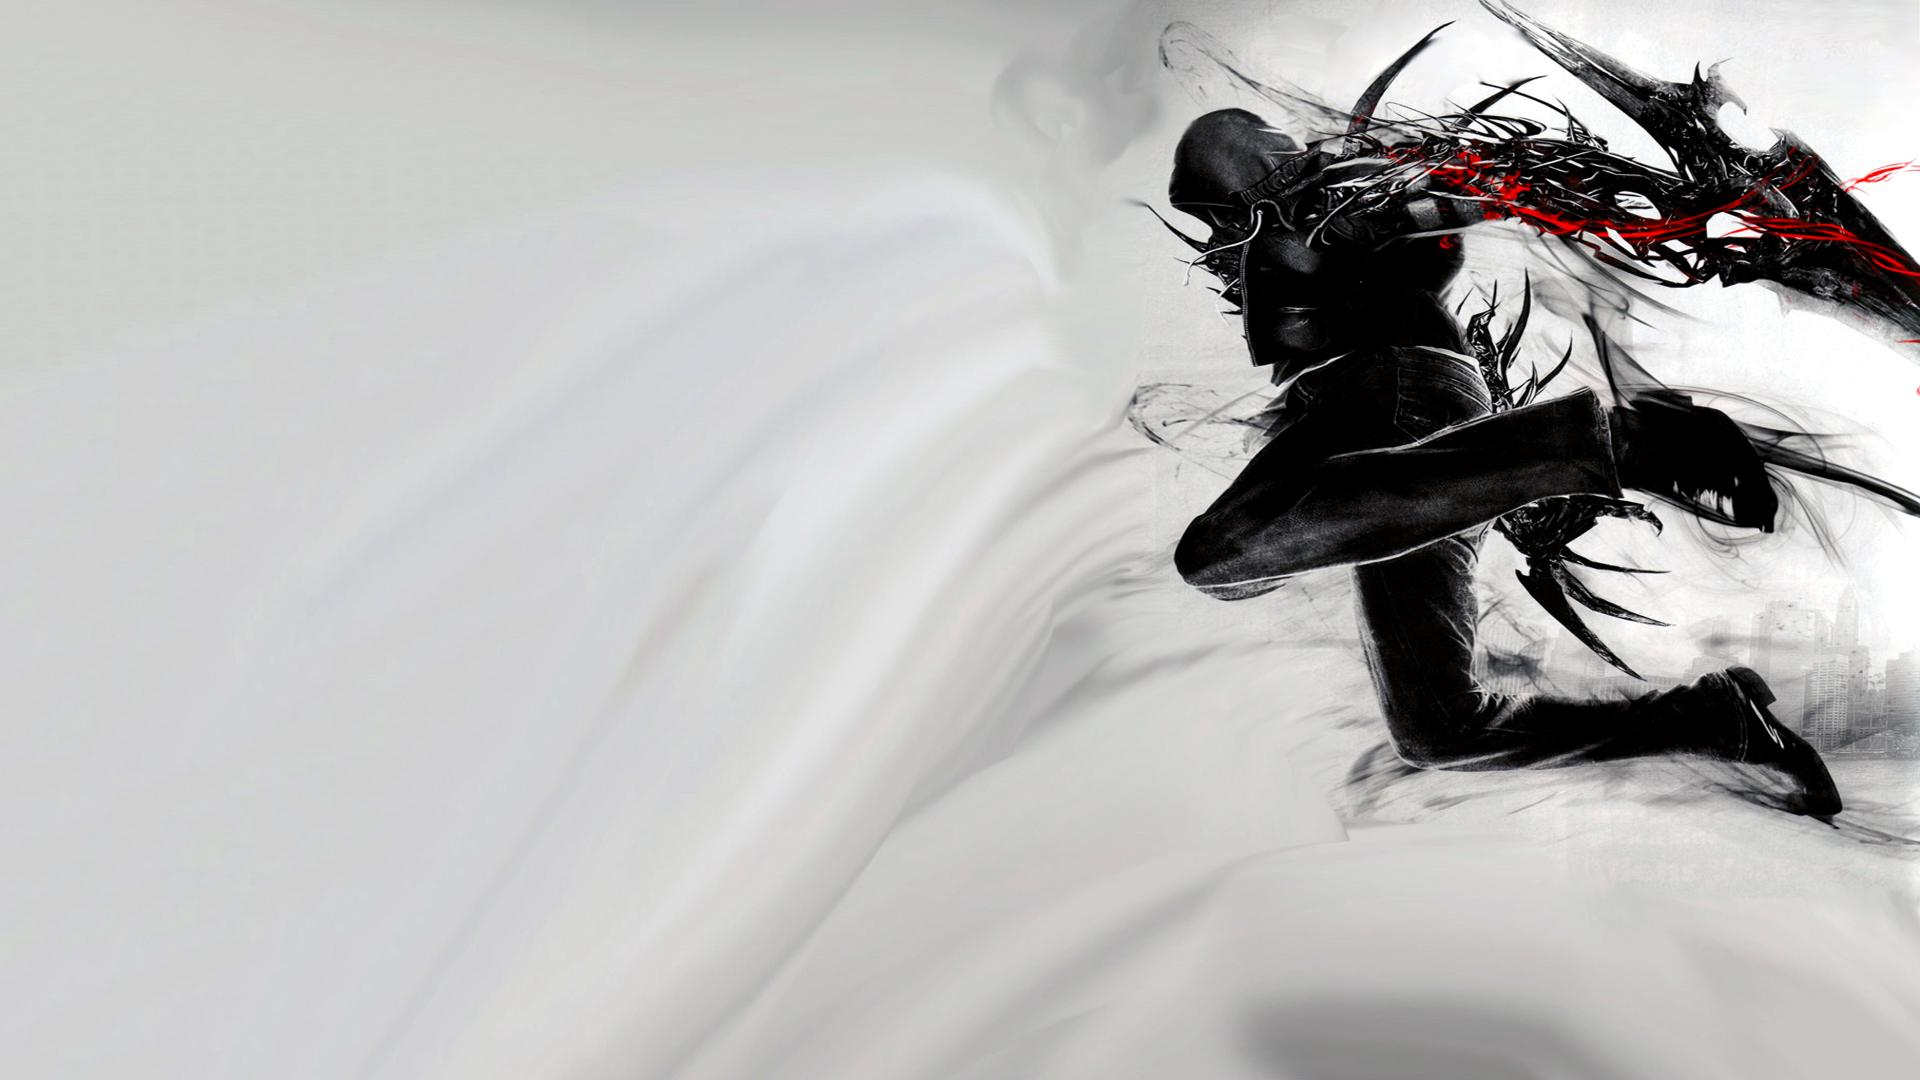 Prototype Wallpaper 25477 1920x1080 px. Category: Games Resolution: 1920x1080px